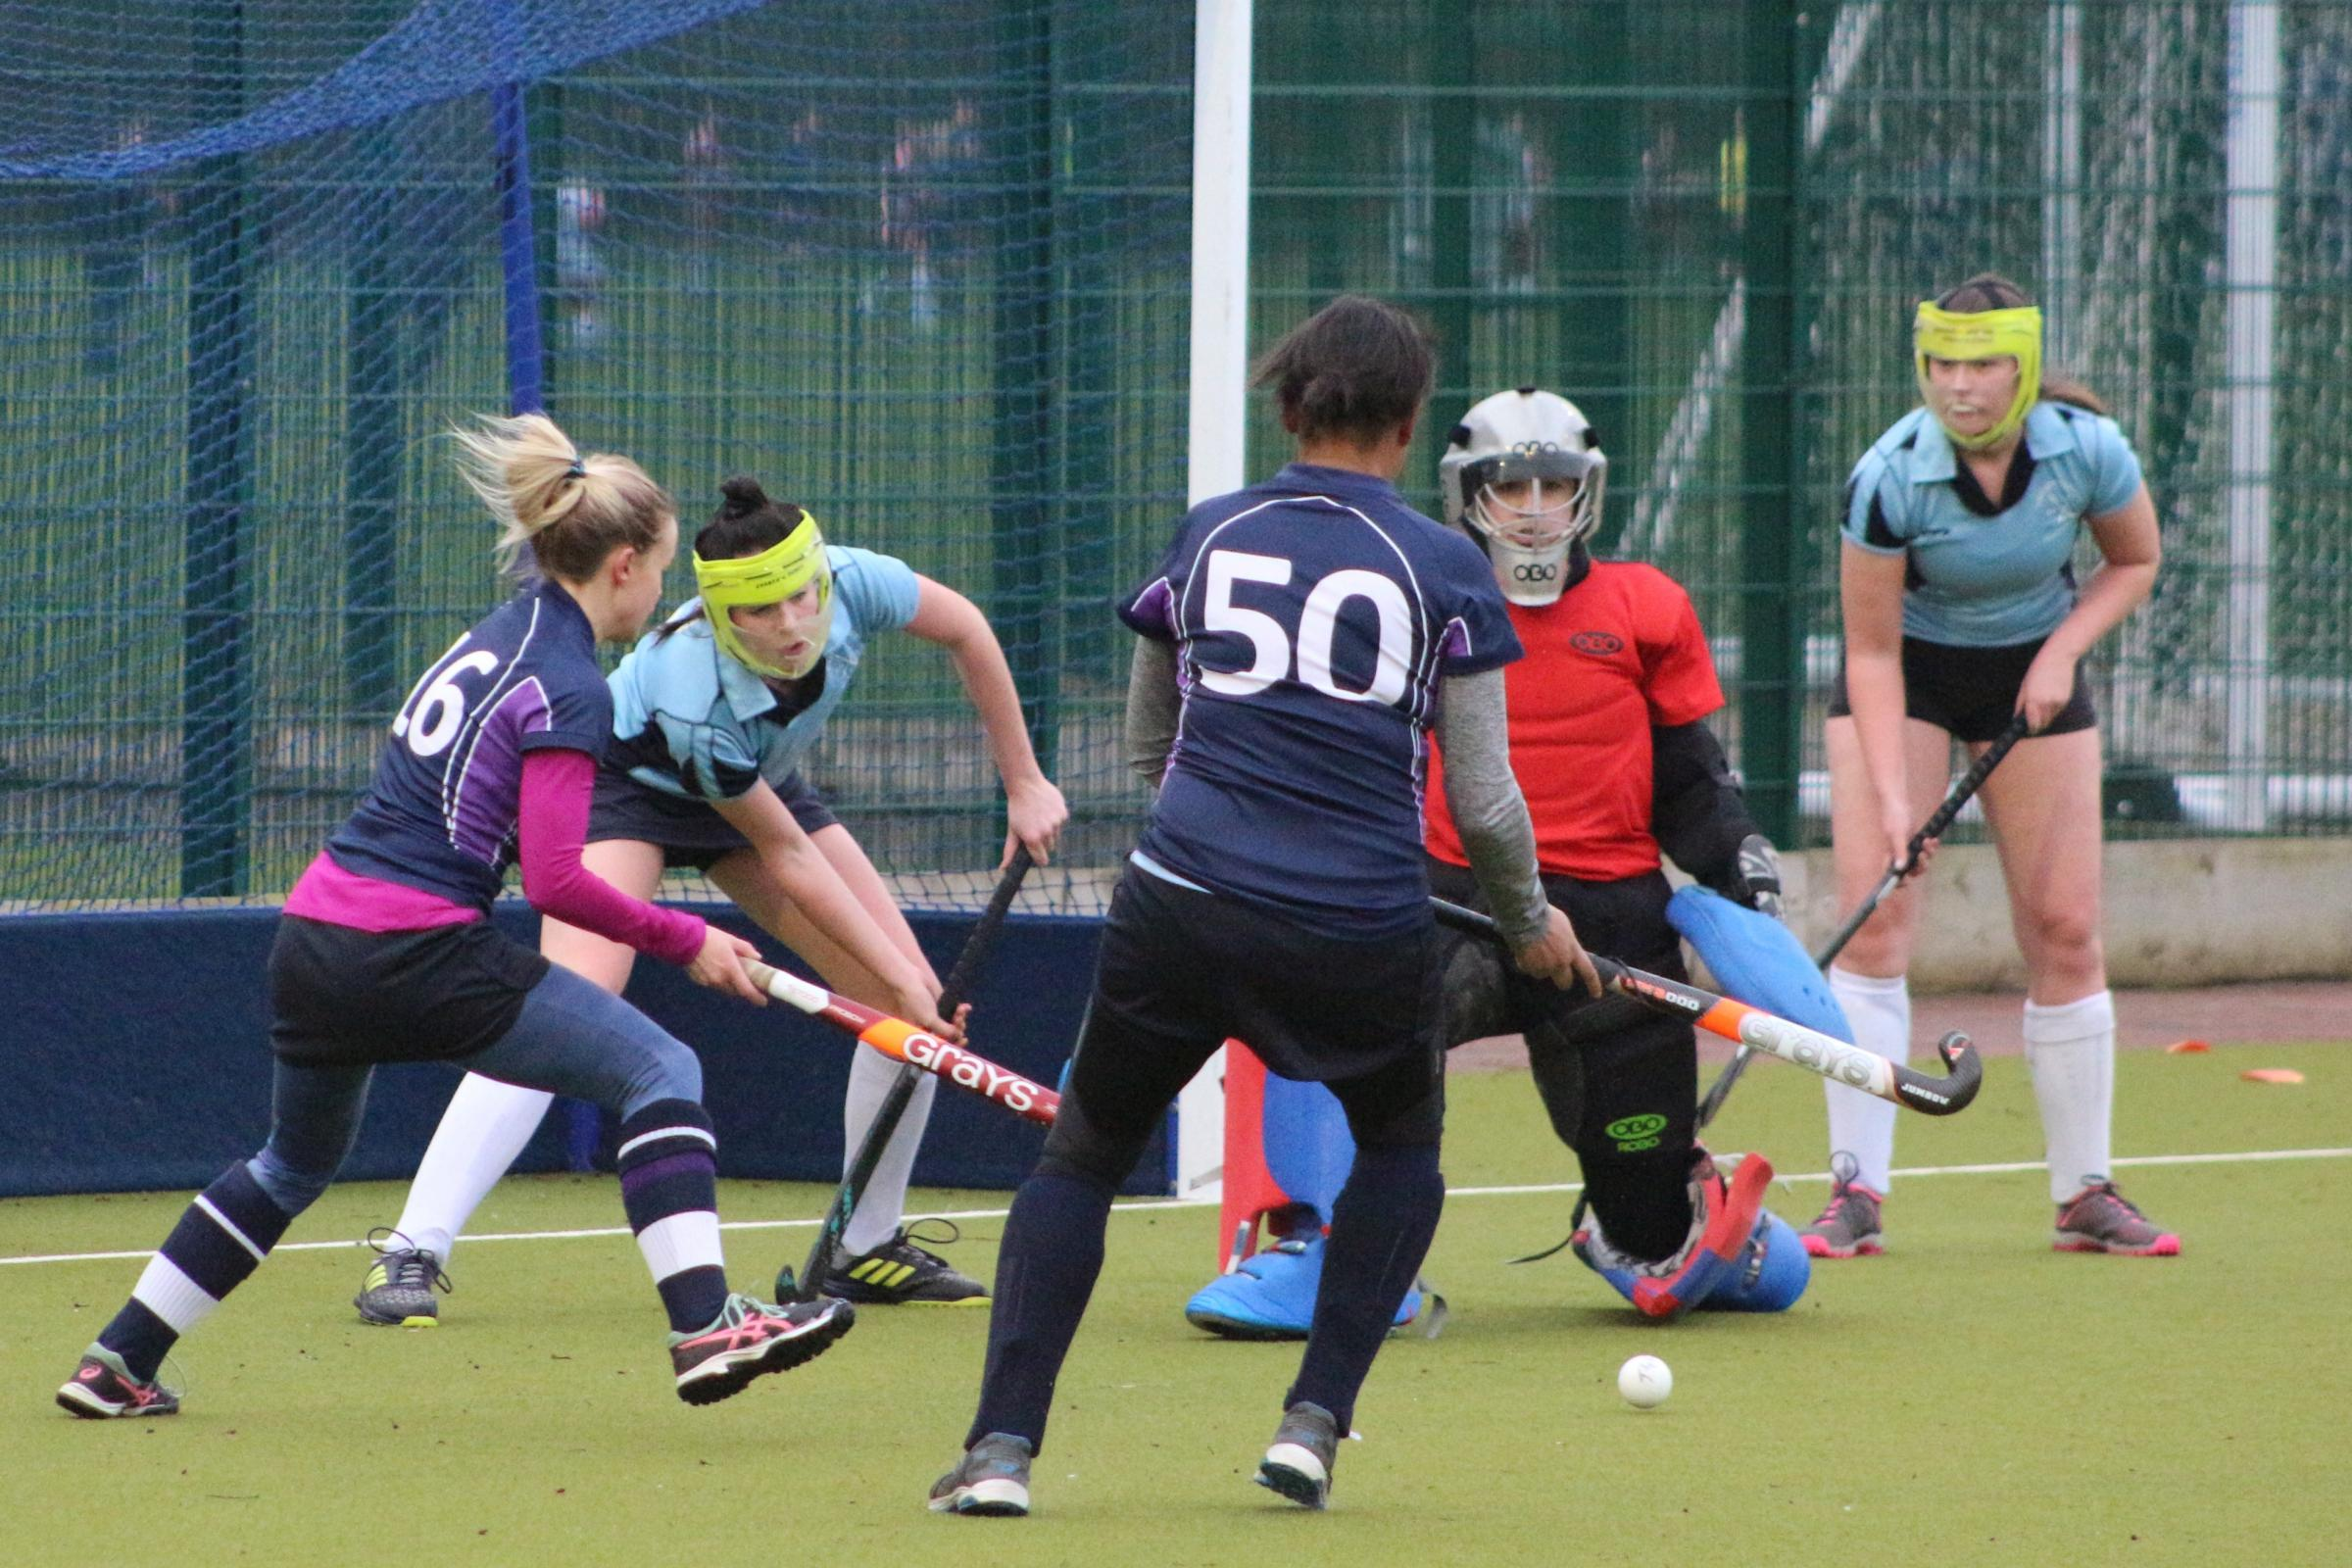 GREAT PLAY: Troon Ladies 1s maintained a spirited defense of their goal.